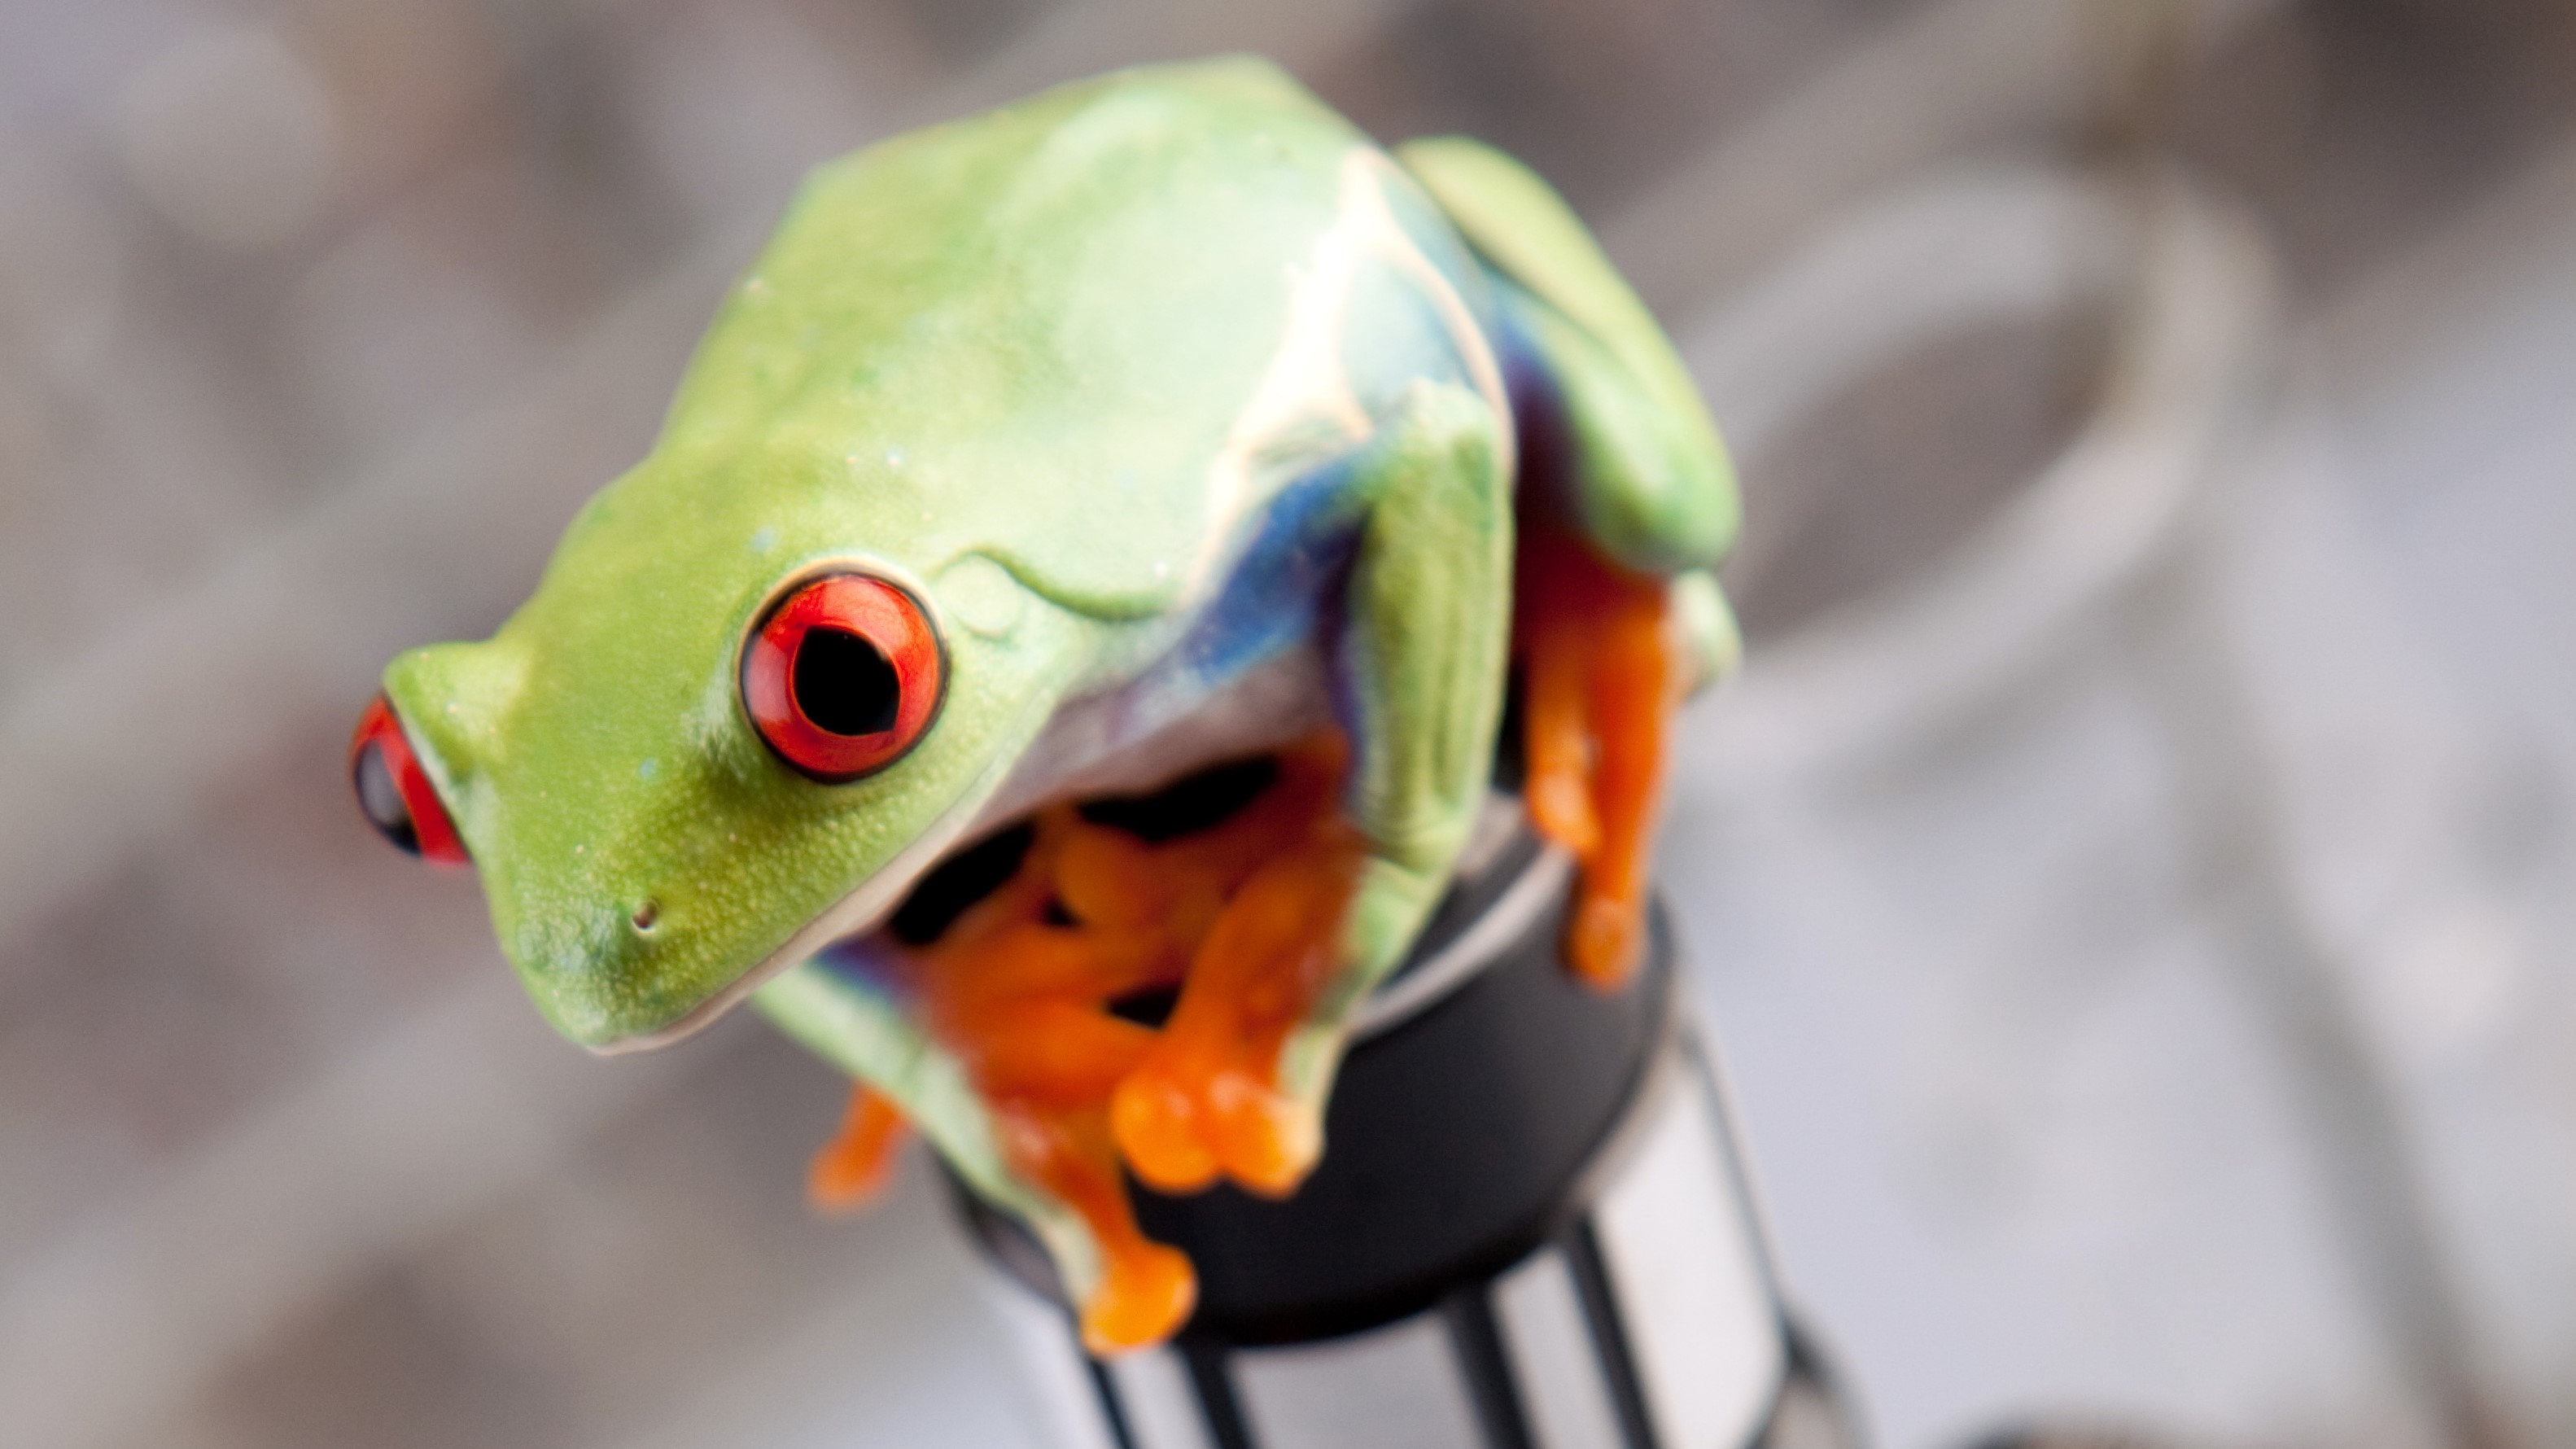 Researchers build 'living robots' using cells scraped from frogs